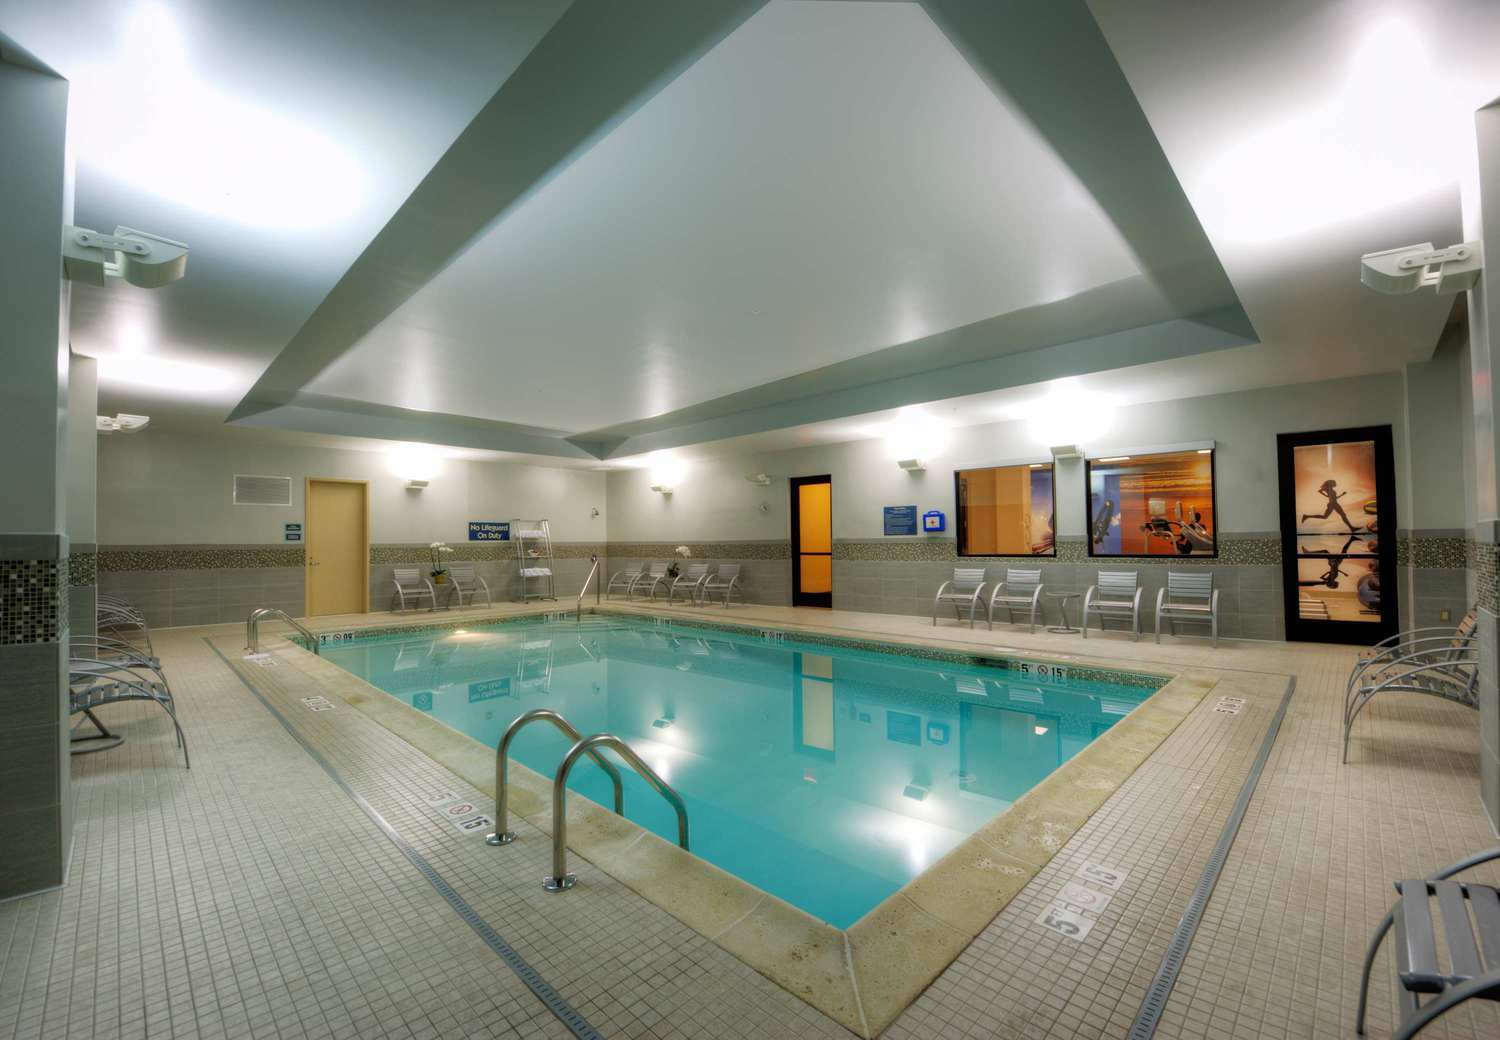 Residence inn portsmouth downtown waterfront portsmouth nh jobs hospitality online for Hotels in portsmouth with swimming pool